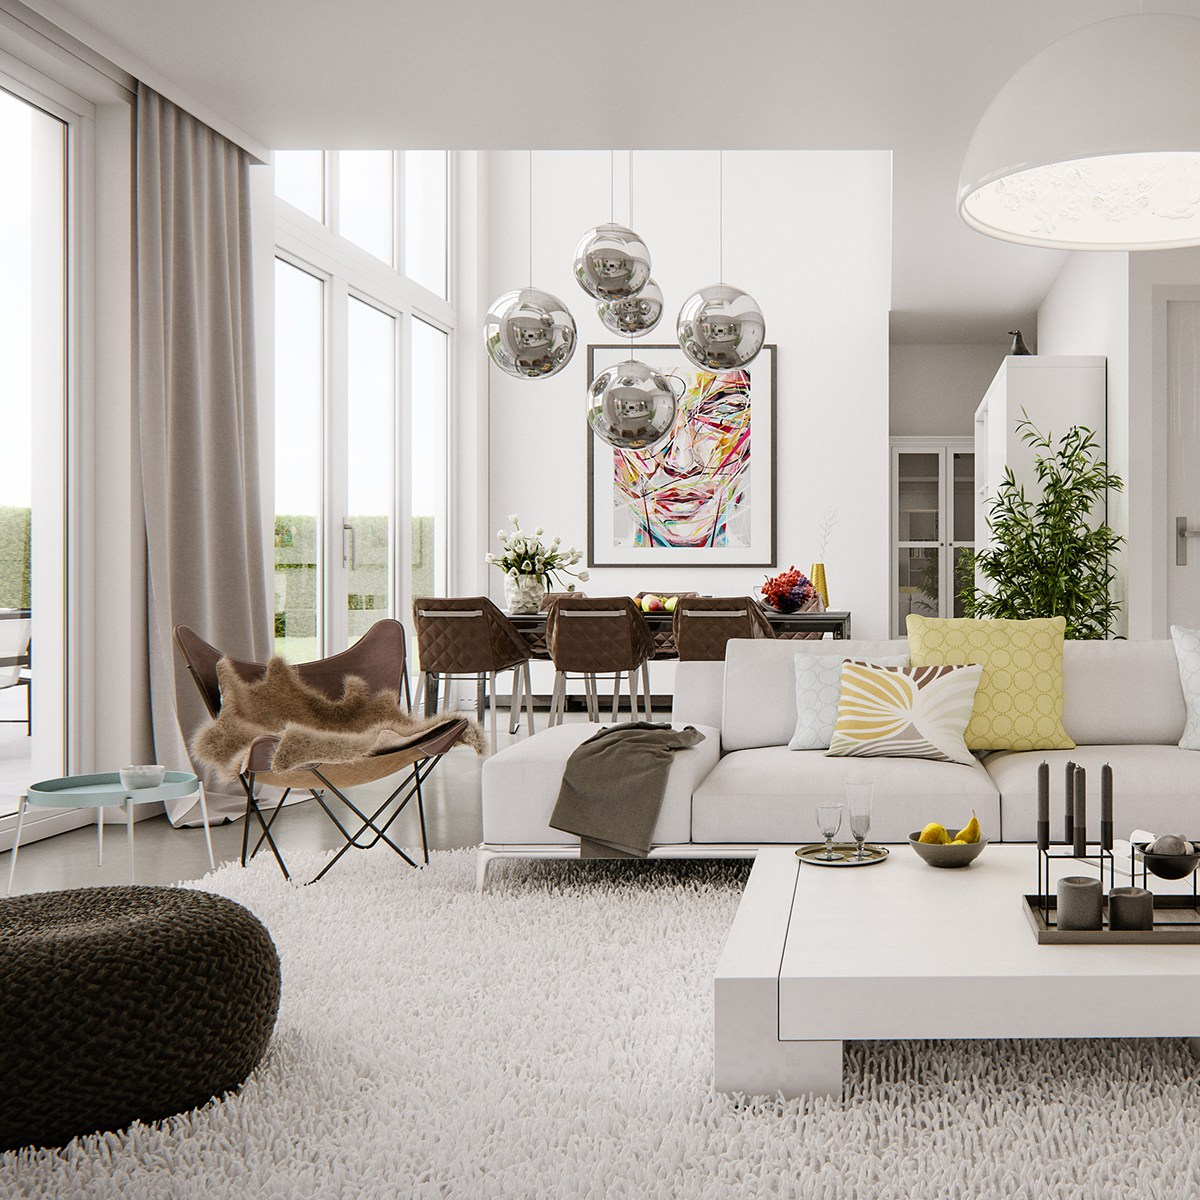 5 living rooms that demonstrate stylish modern design trends for Decoration maison moderne